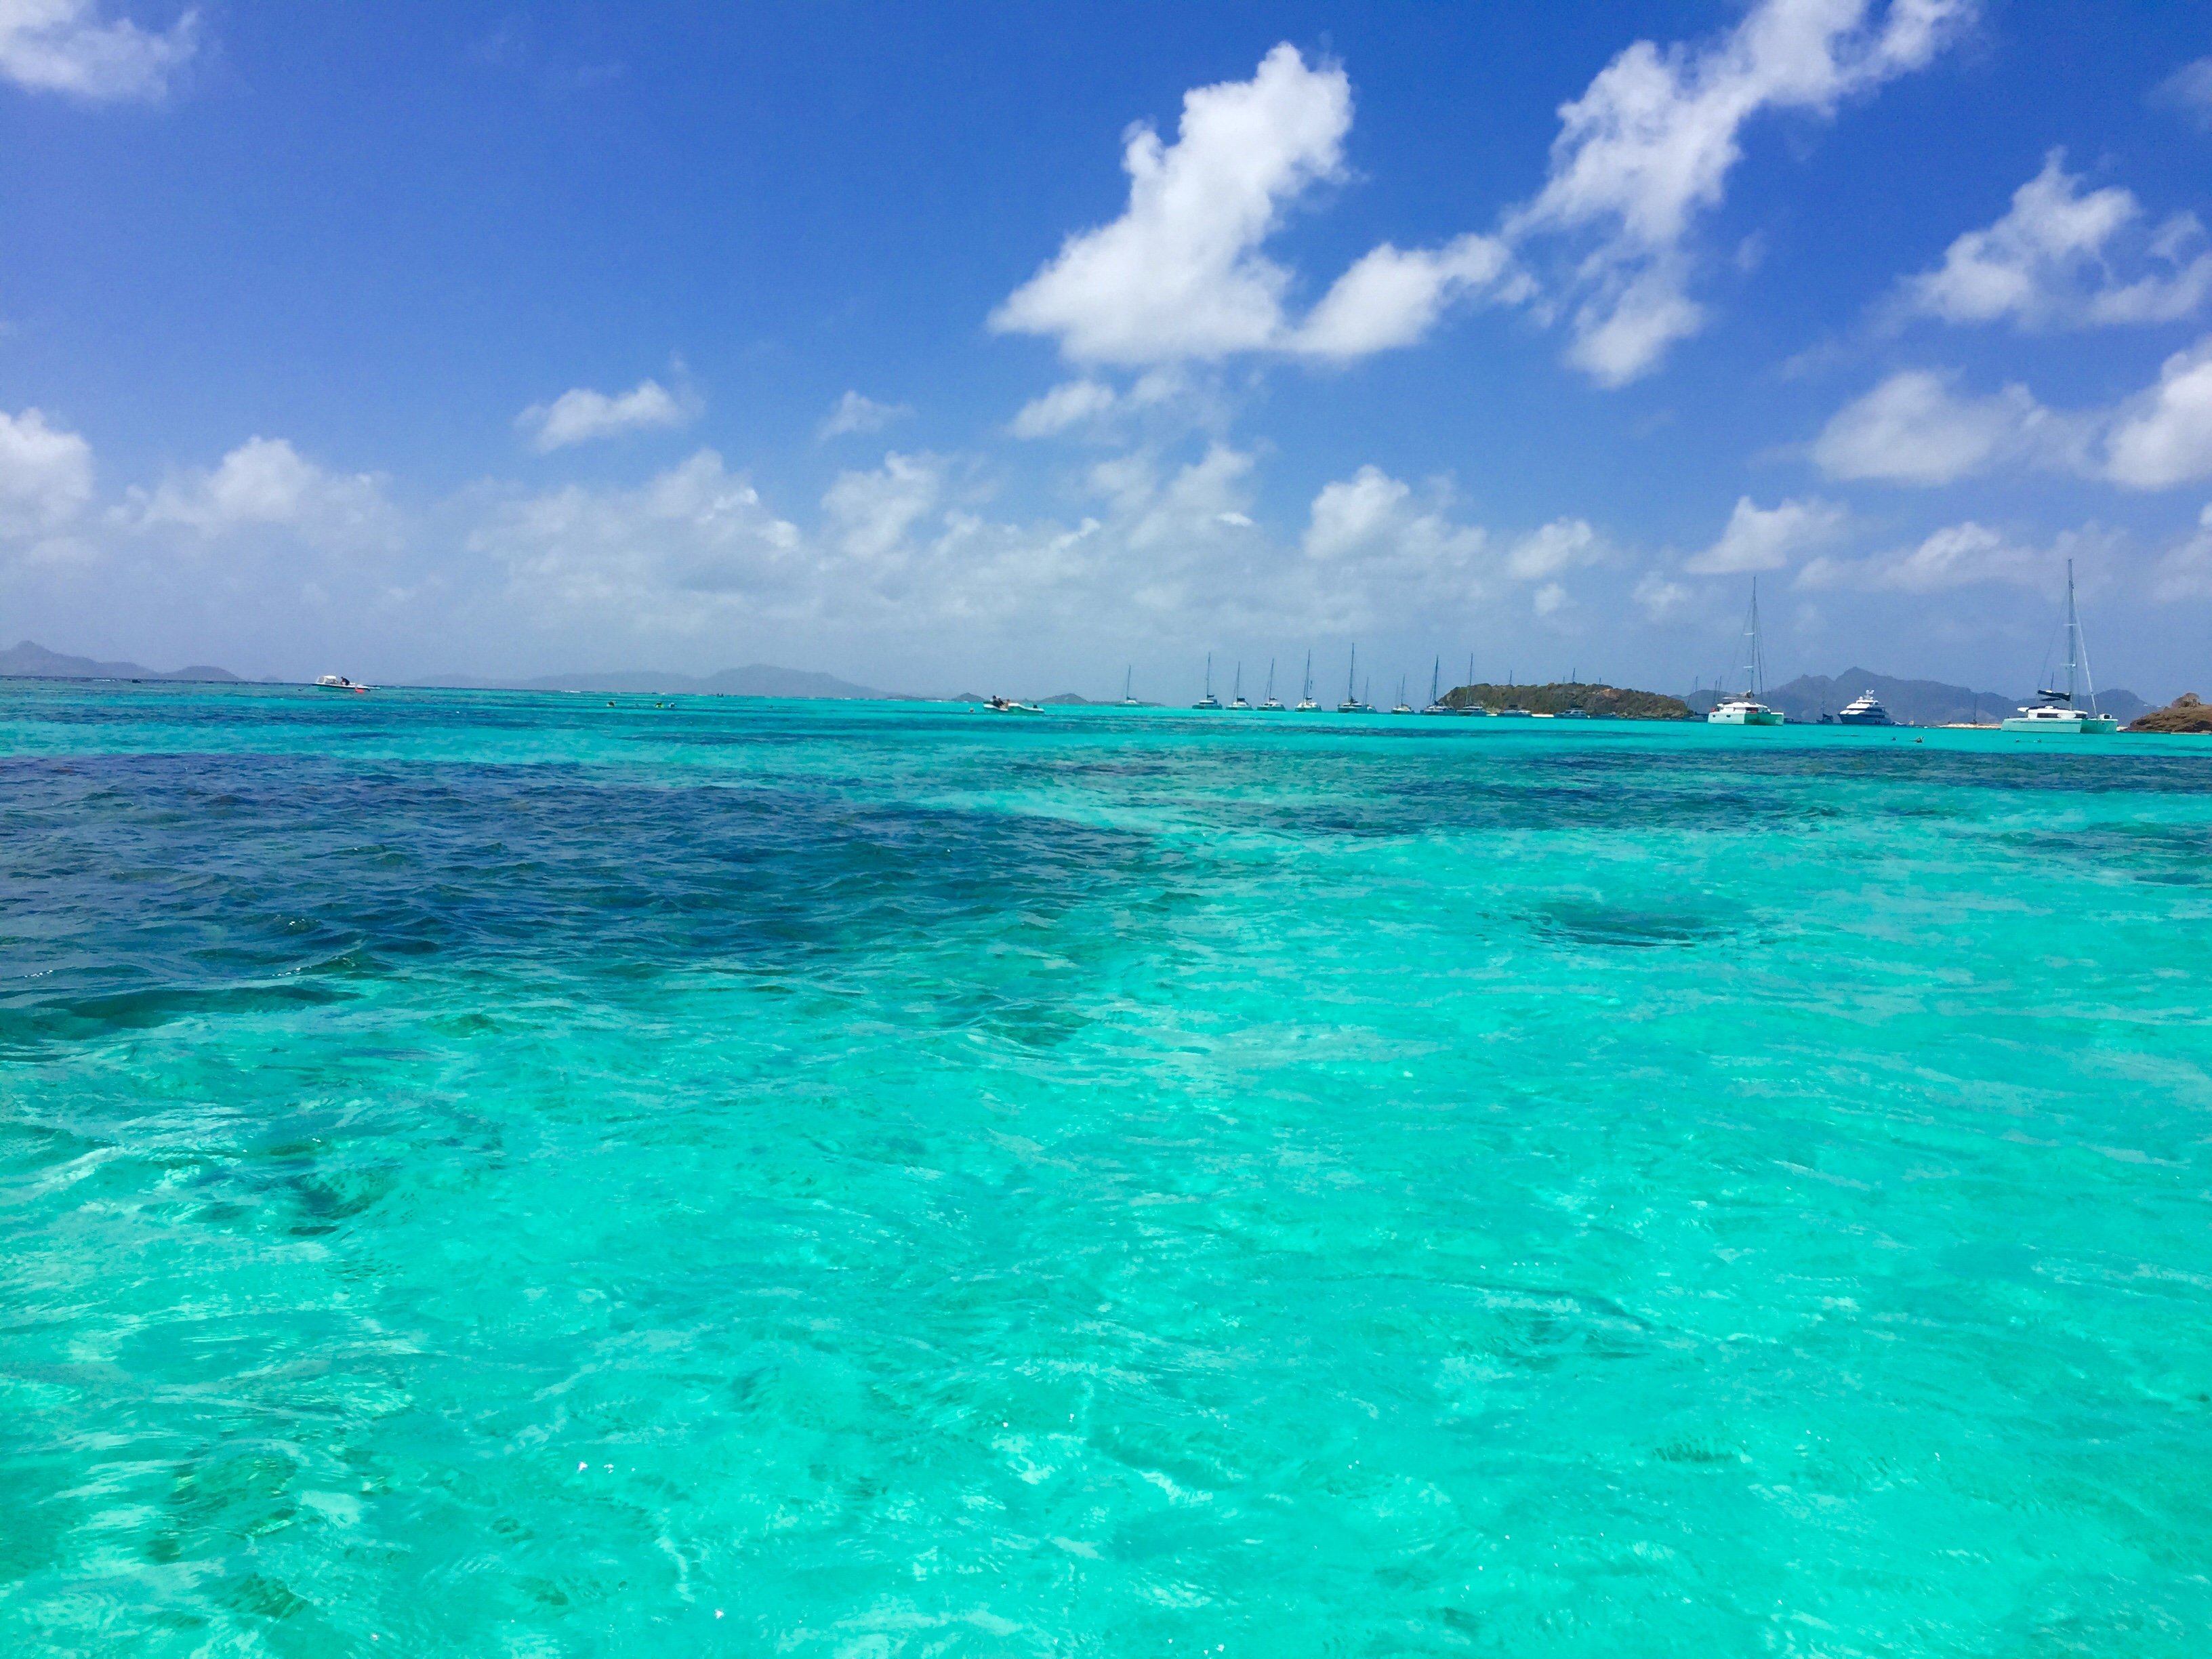 The Cays